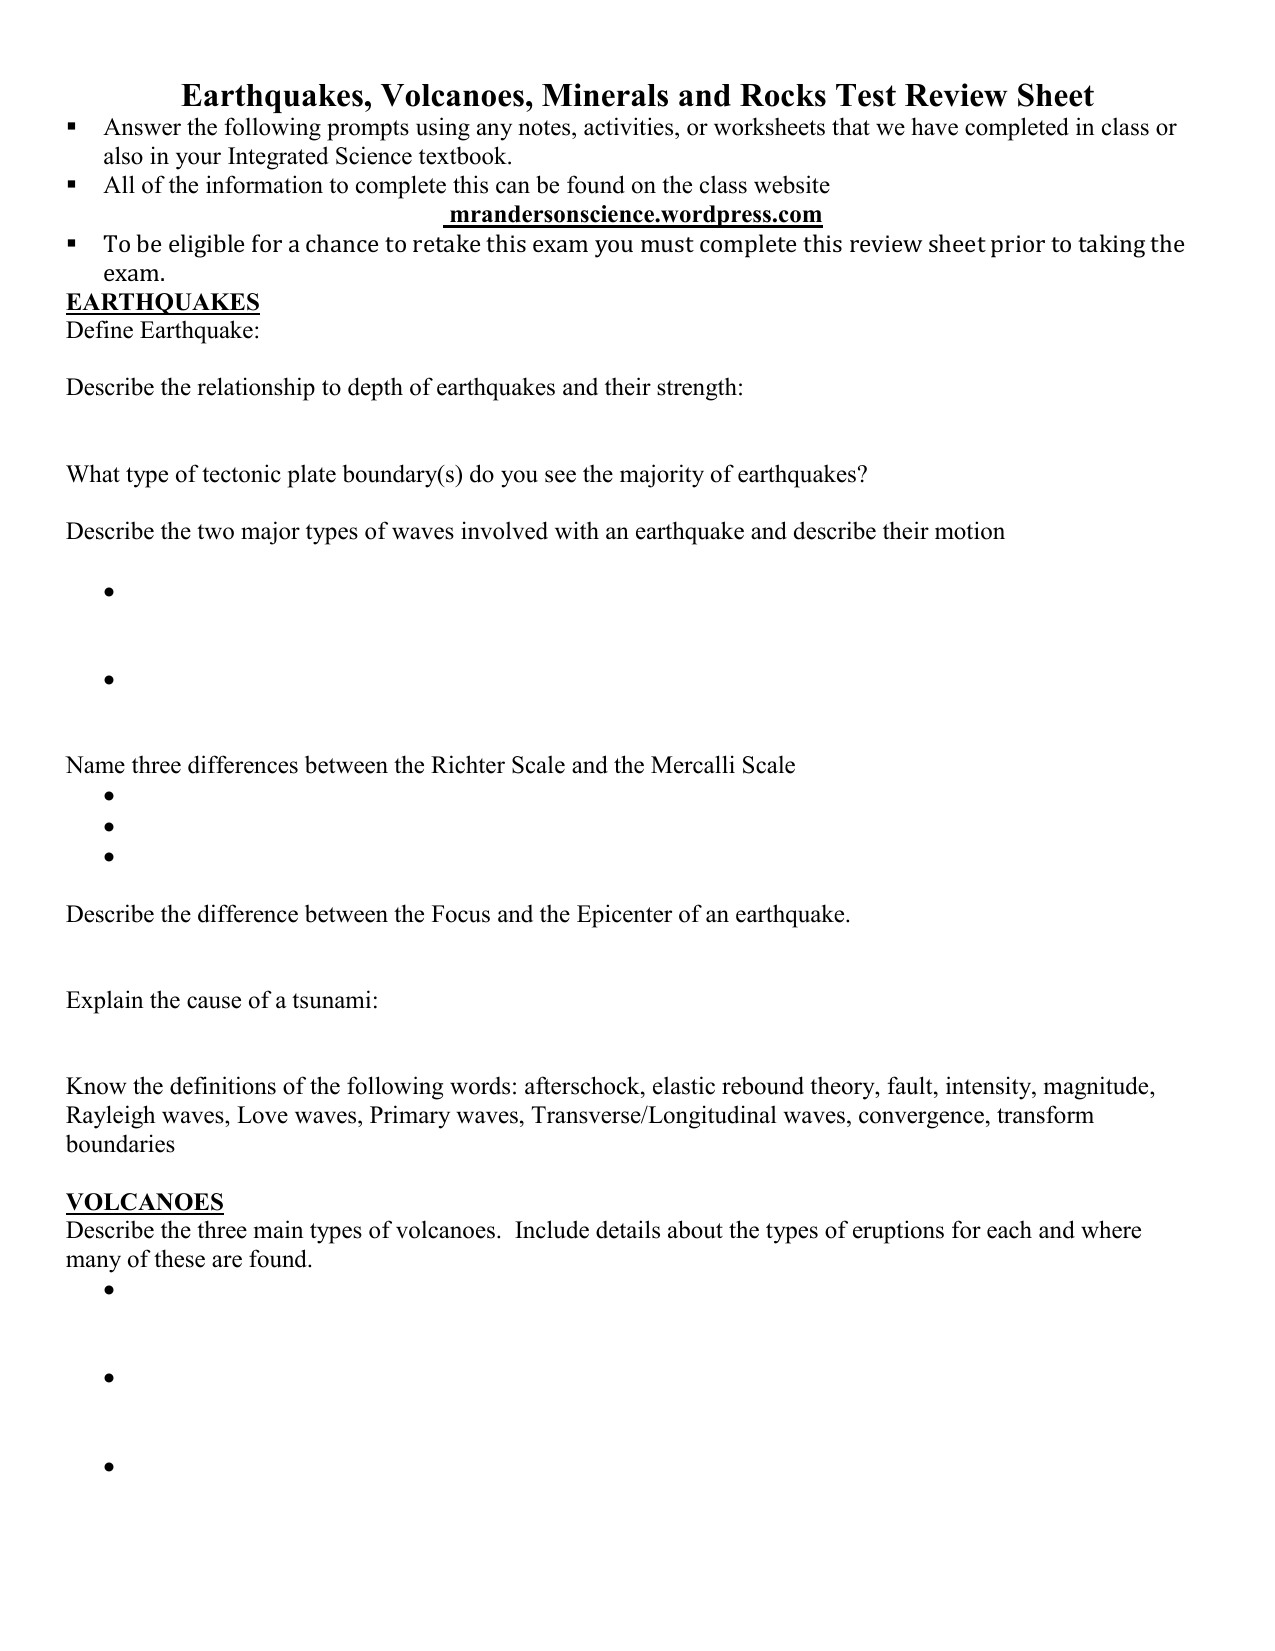 Workbooks the rock cycle worksheets : Earthquakes, Volcanoes, Minerals and Rocks Test Review Sheet